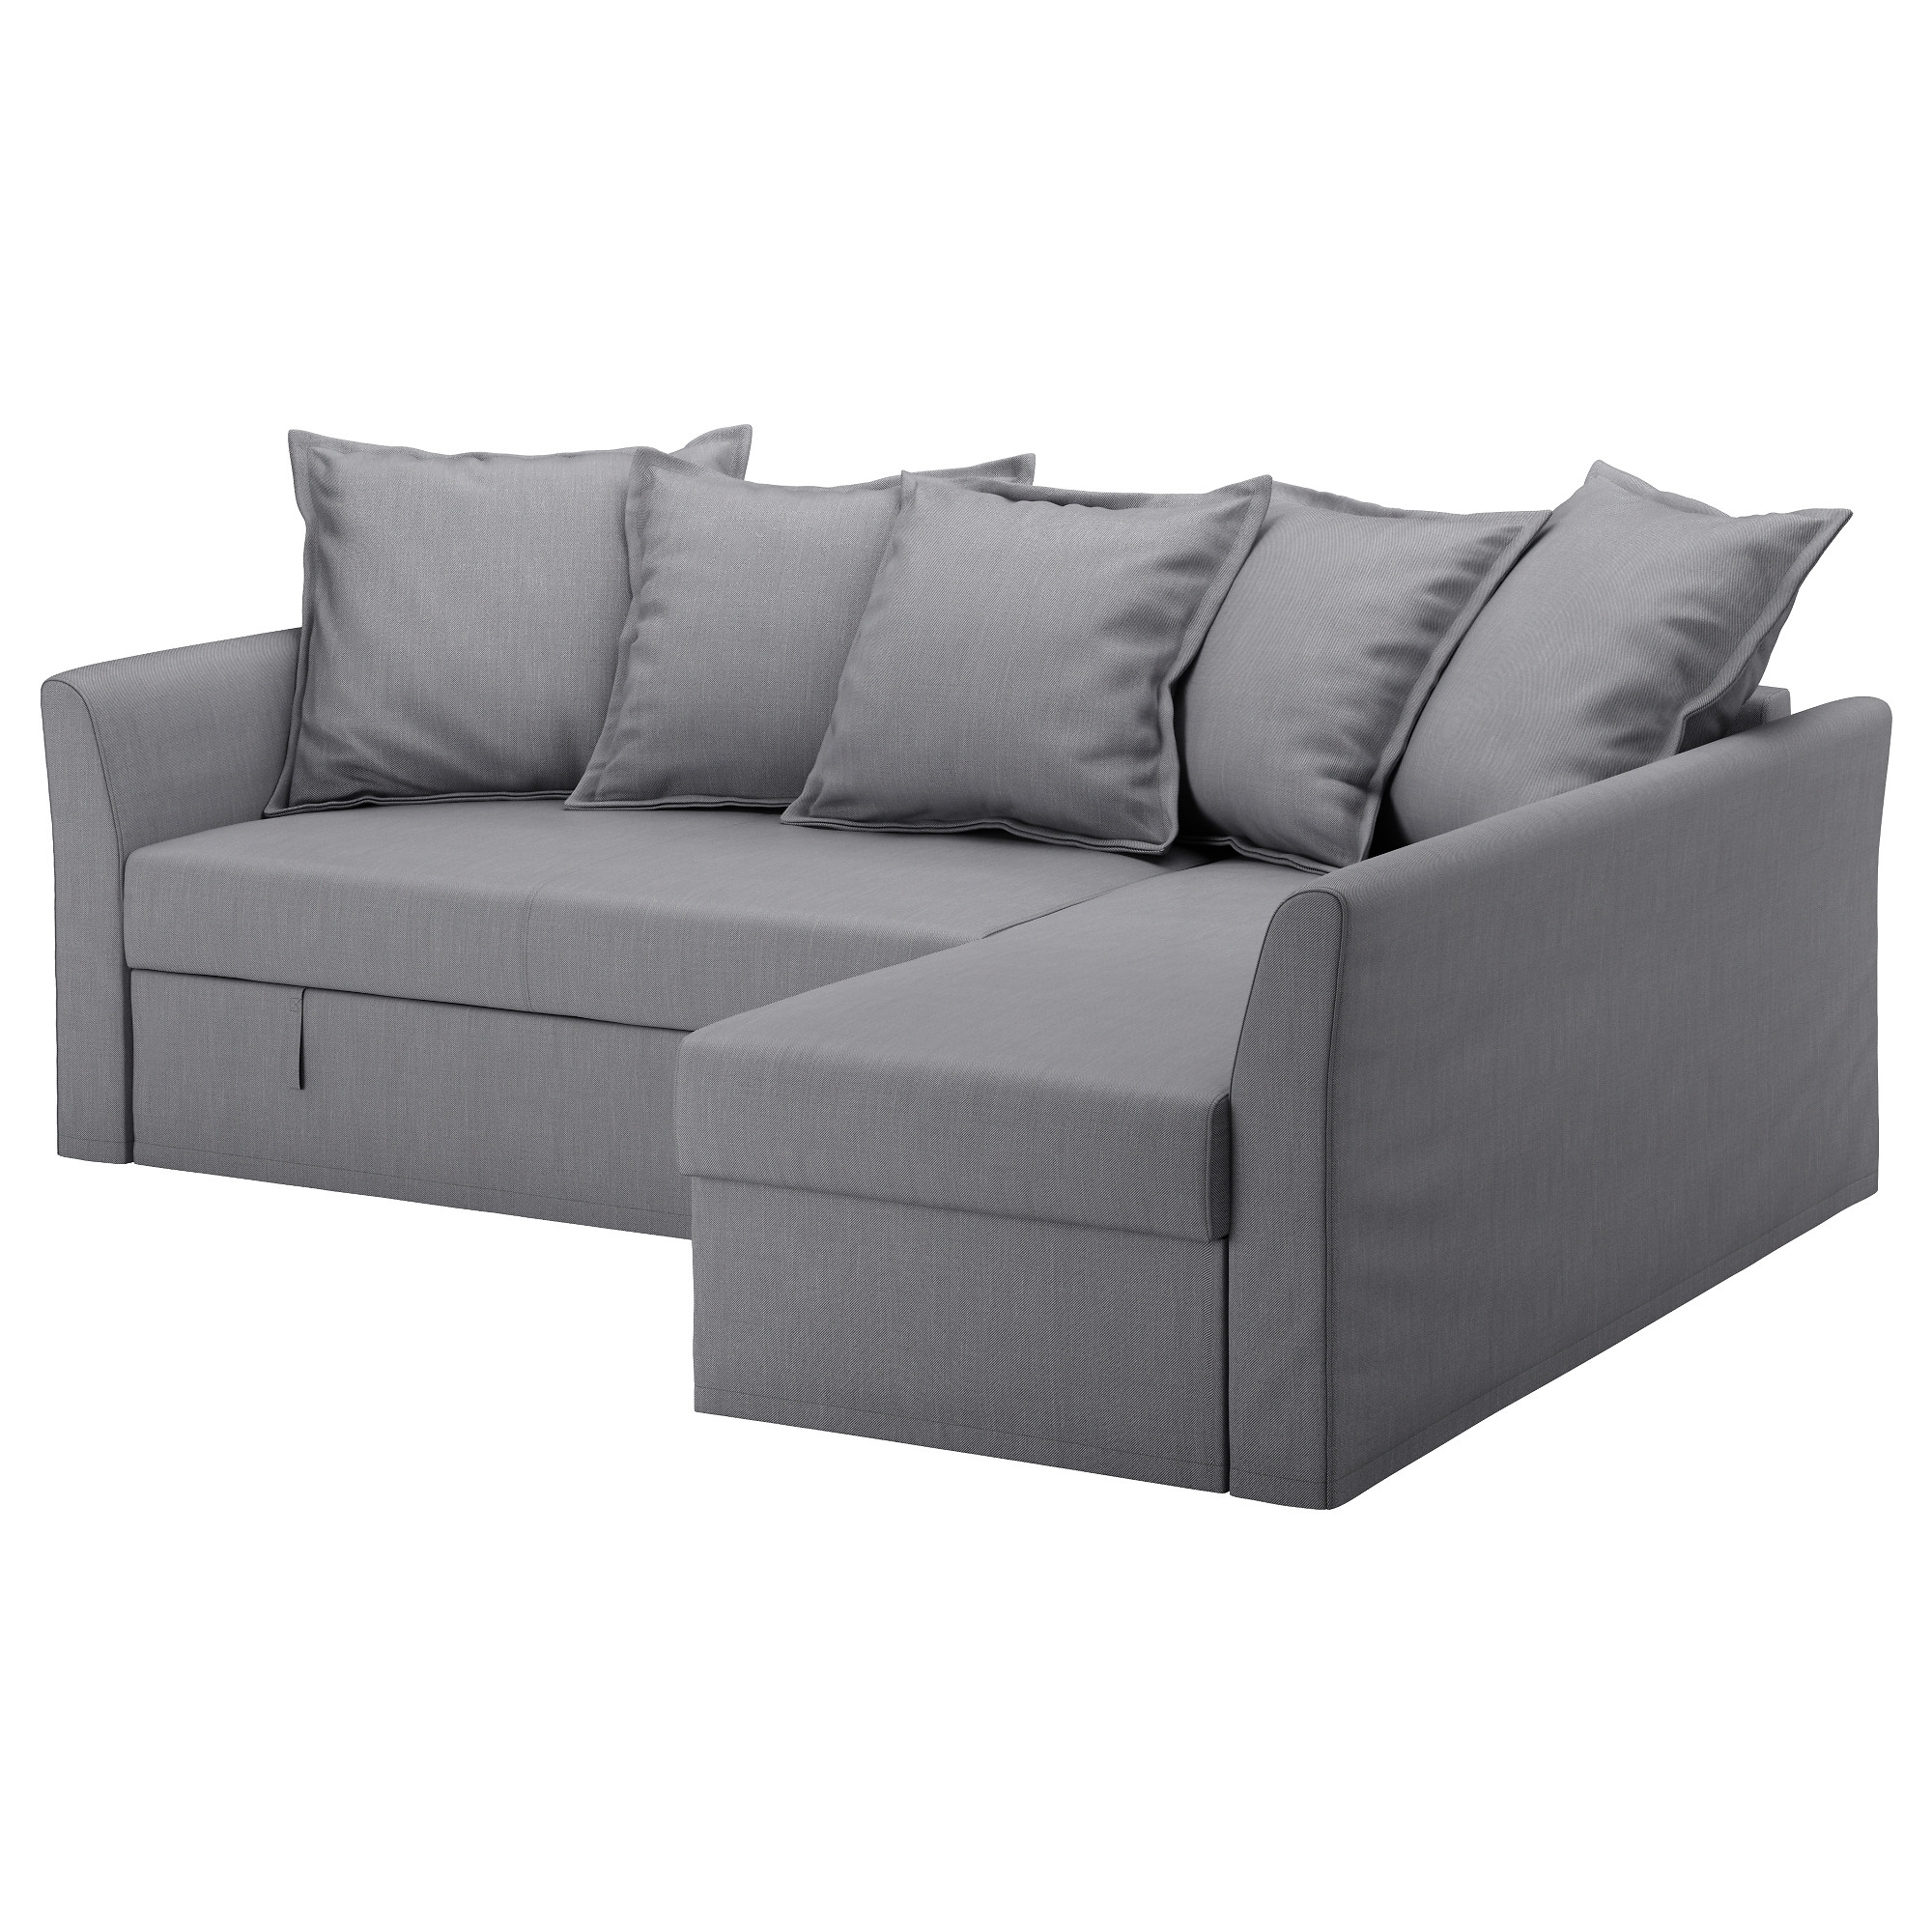 Top 15 Sectional Sleeper Sofas Ikea For Small Houses – Video And Pertaining To Ikea Sectional Sleeper Sofas (View 3 of 10)